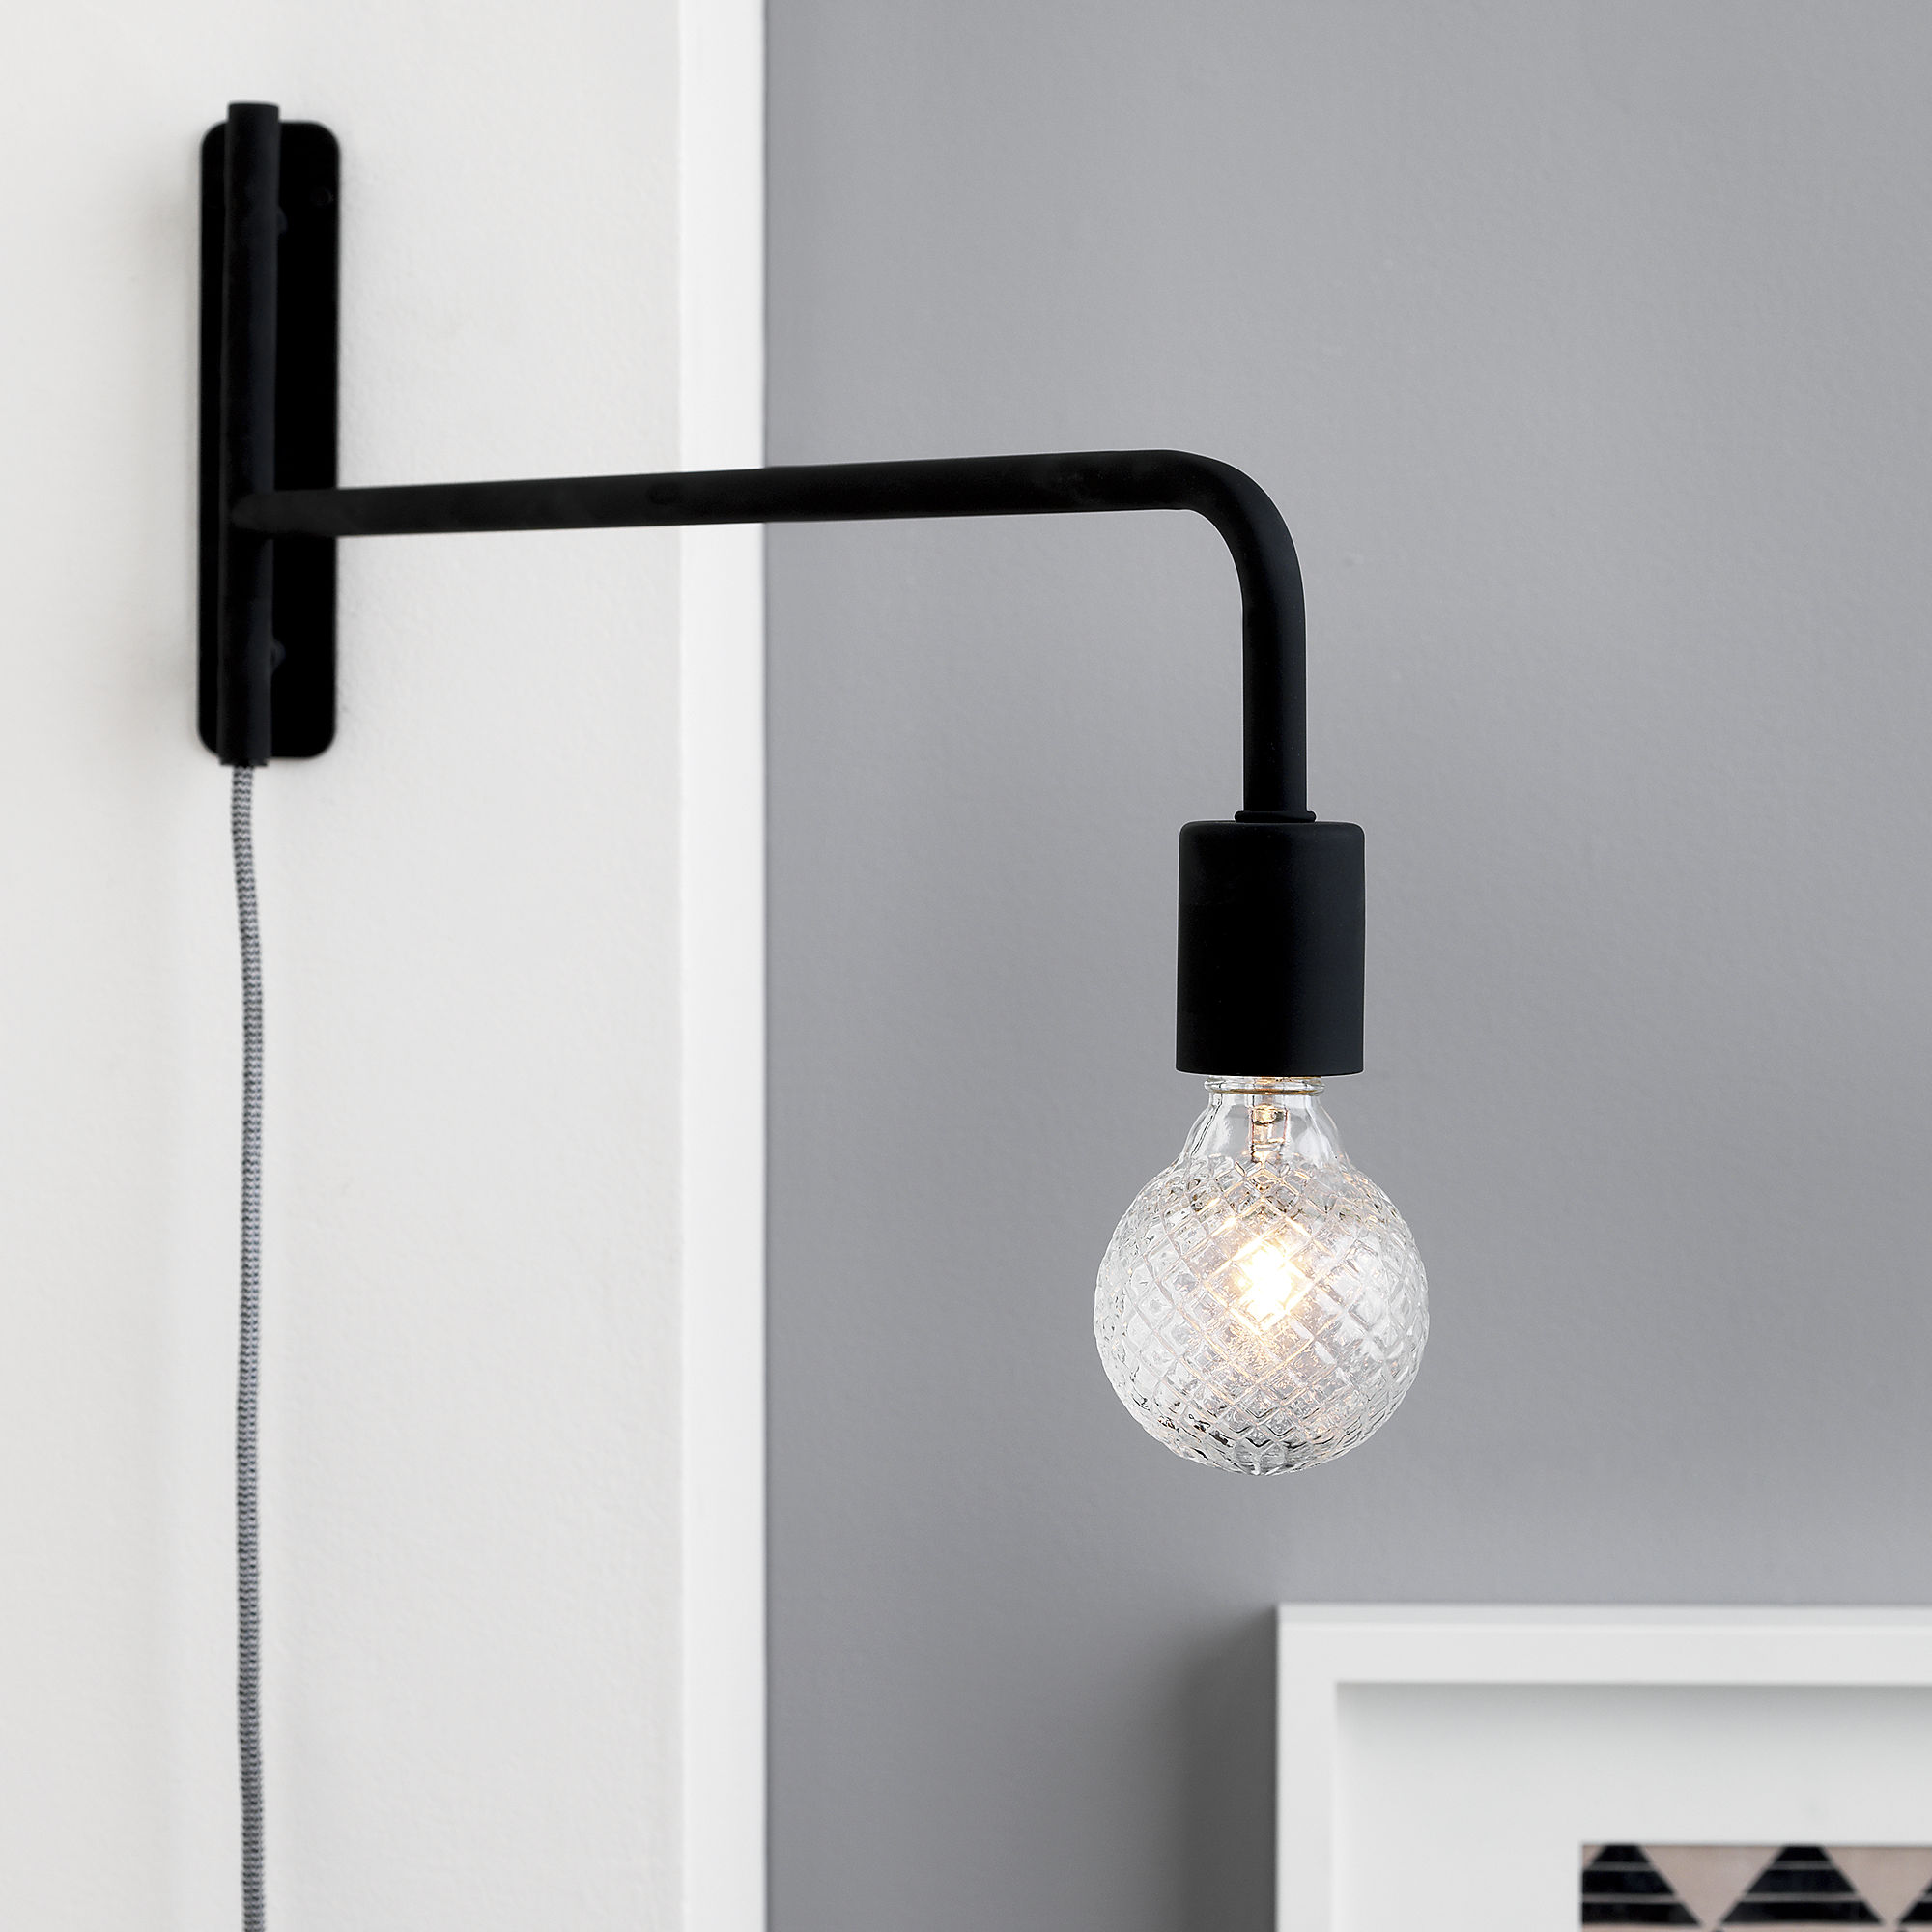 Swing Wall Lamp Lime Studio Swing Light